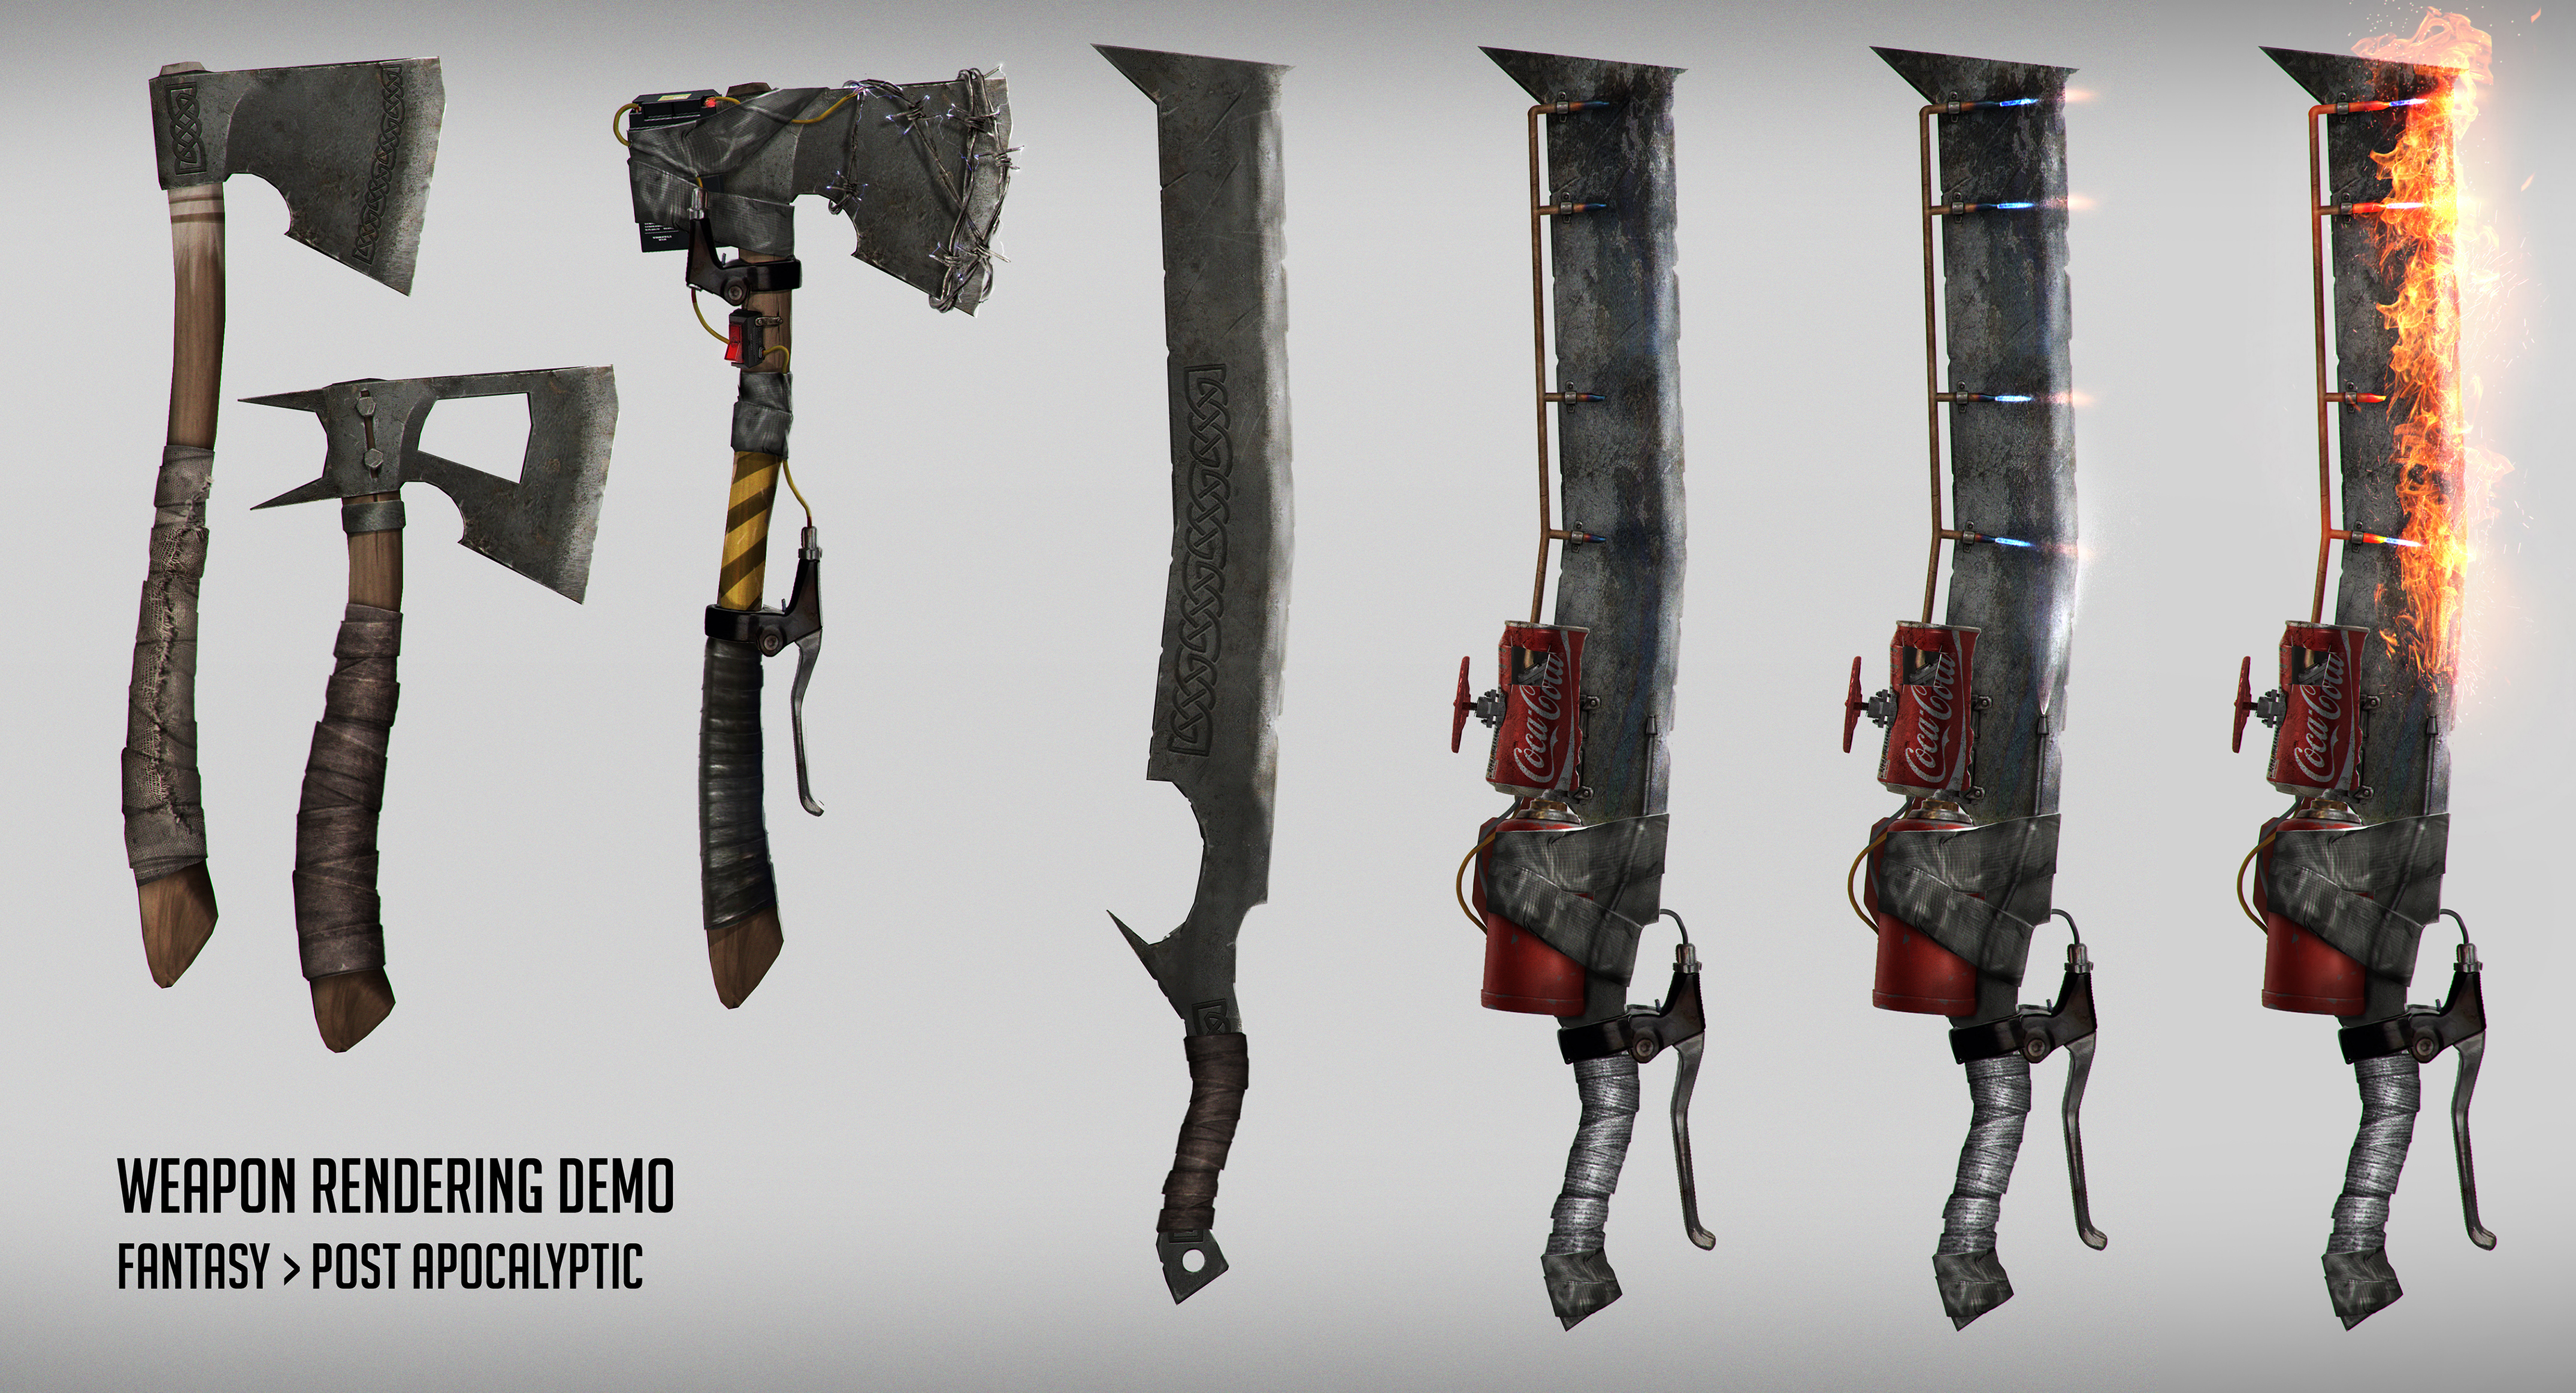 Weapon rendering demo by johnsonting